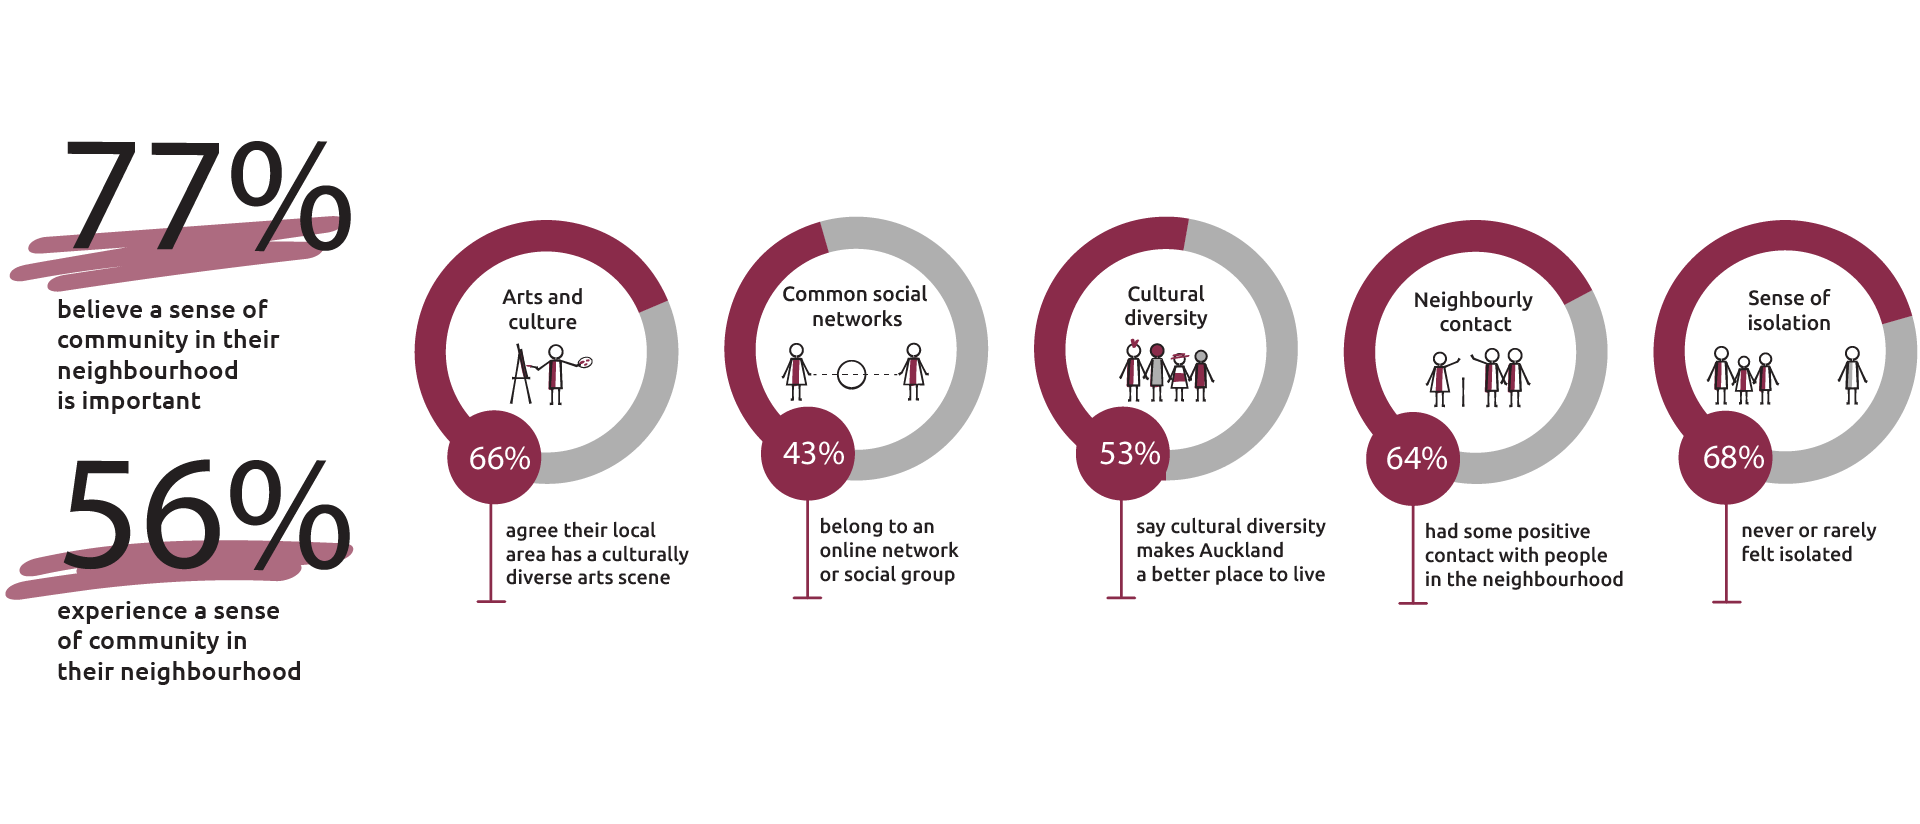 Graphic showing the quality of life survey results in percentages of Aucklanders who have a sense of belonging in these areas: arts and culture, common social networks, cultural diversity, neighbourly contact and sense of isolation.